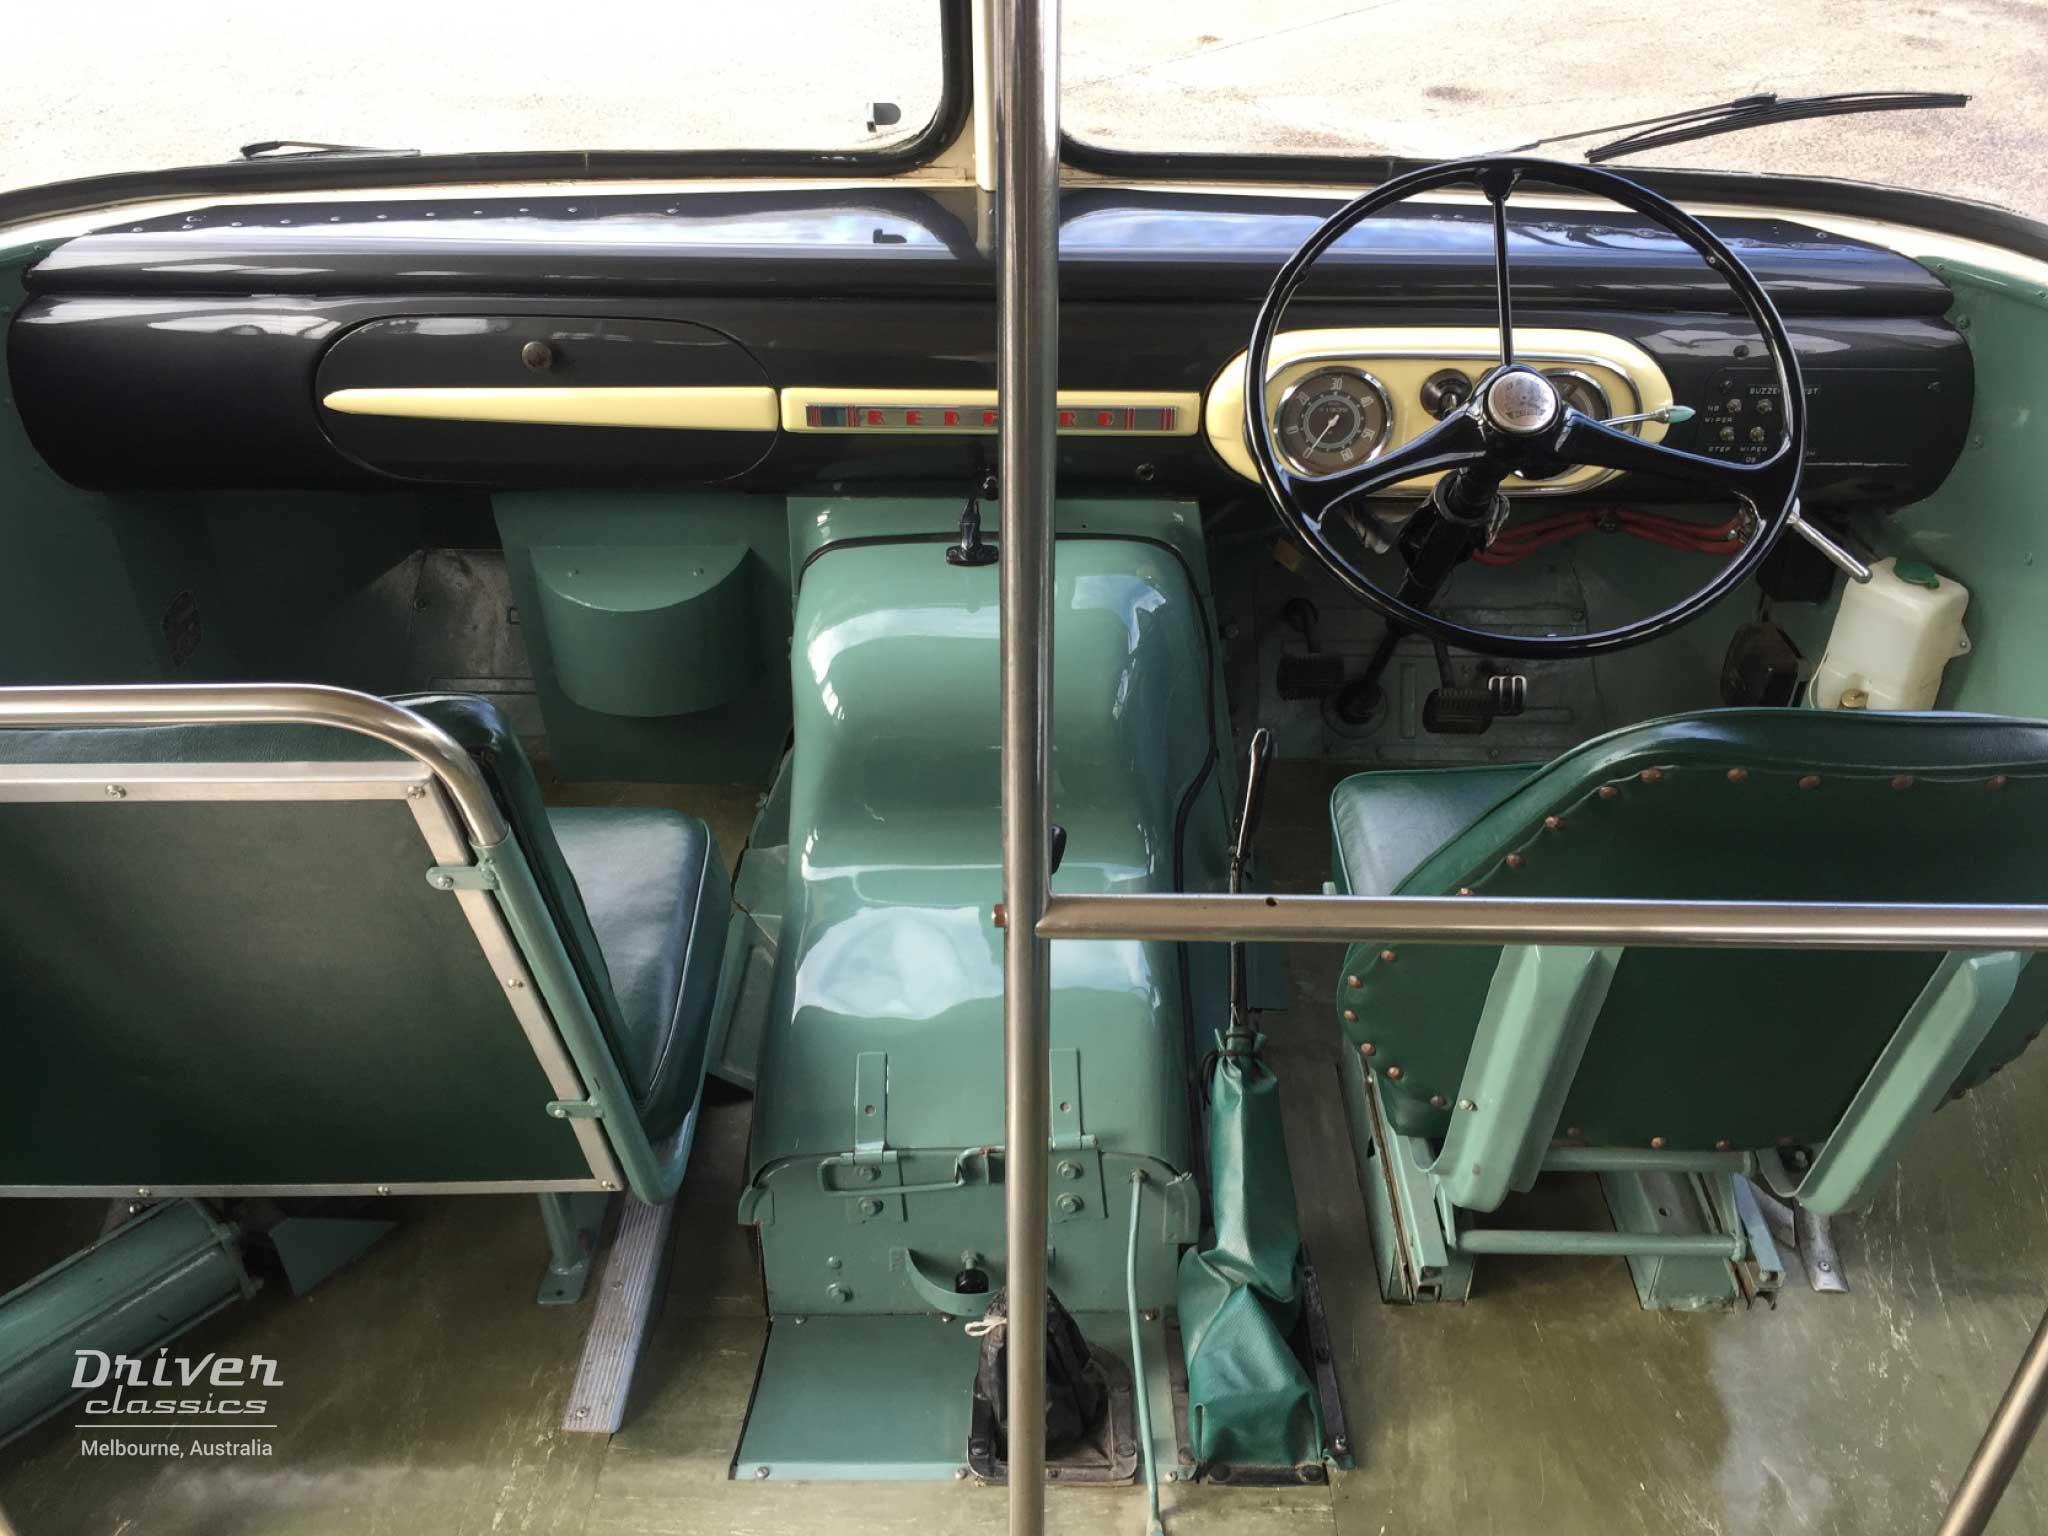 1959 Bedford SB3 bus dashboard and front interior area.